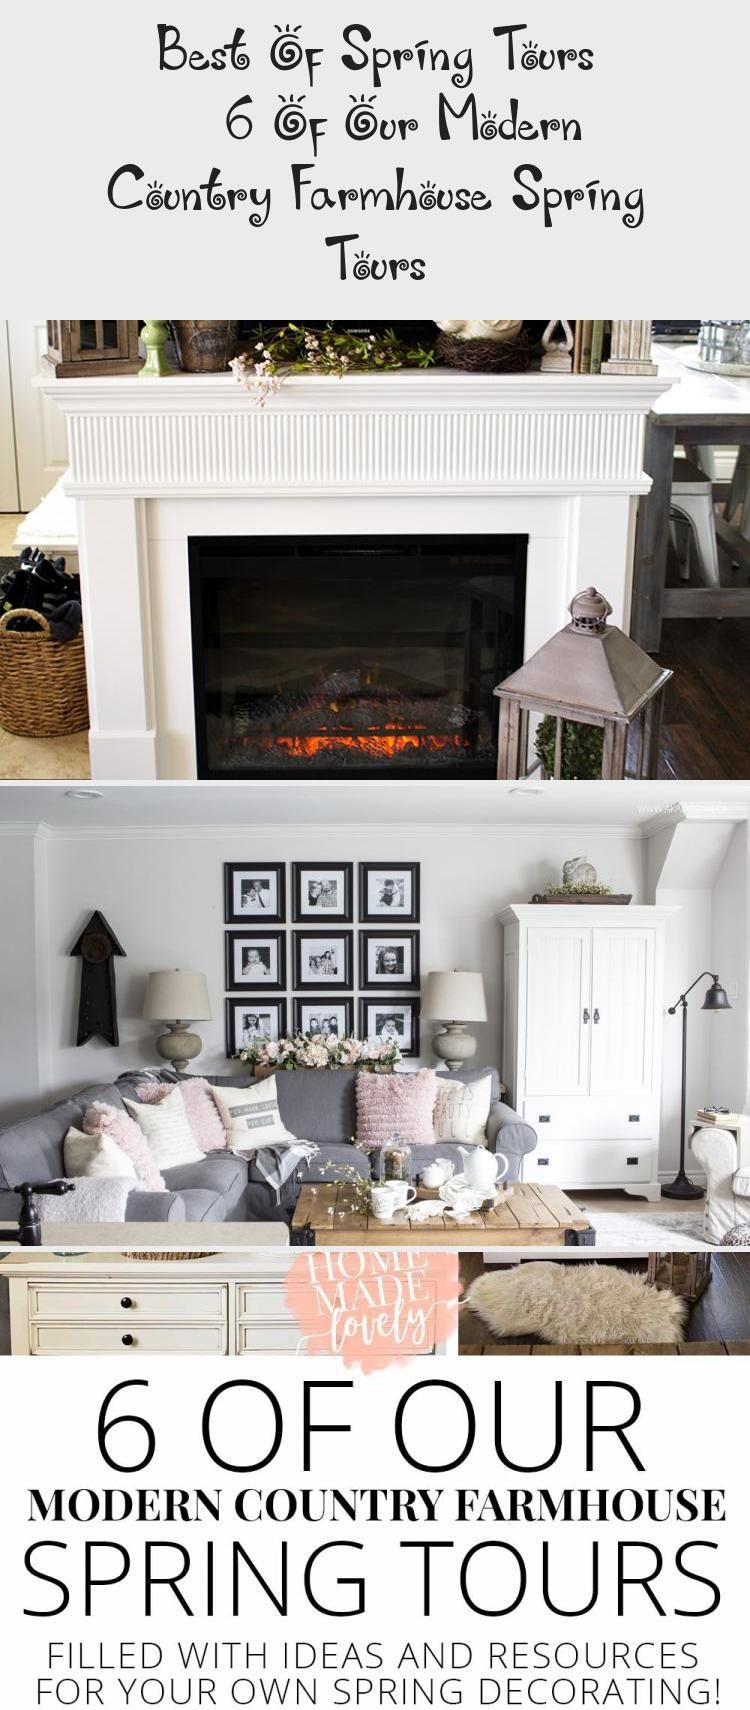 White Electric Fireplace Mantel With Spring Decor Like Lanterns Greenery And Ceramic Birds Modernmantled In 2020 Modern Country Country Farmhouse Modern Mantle Decor